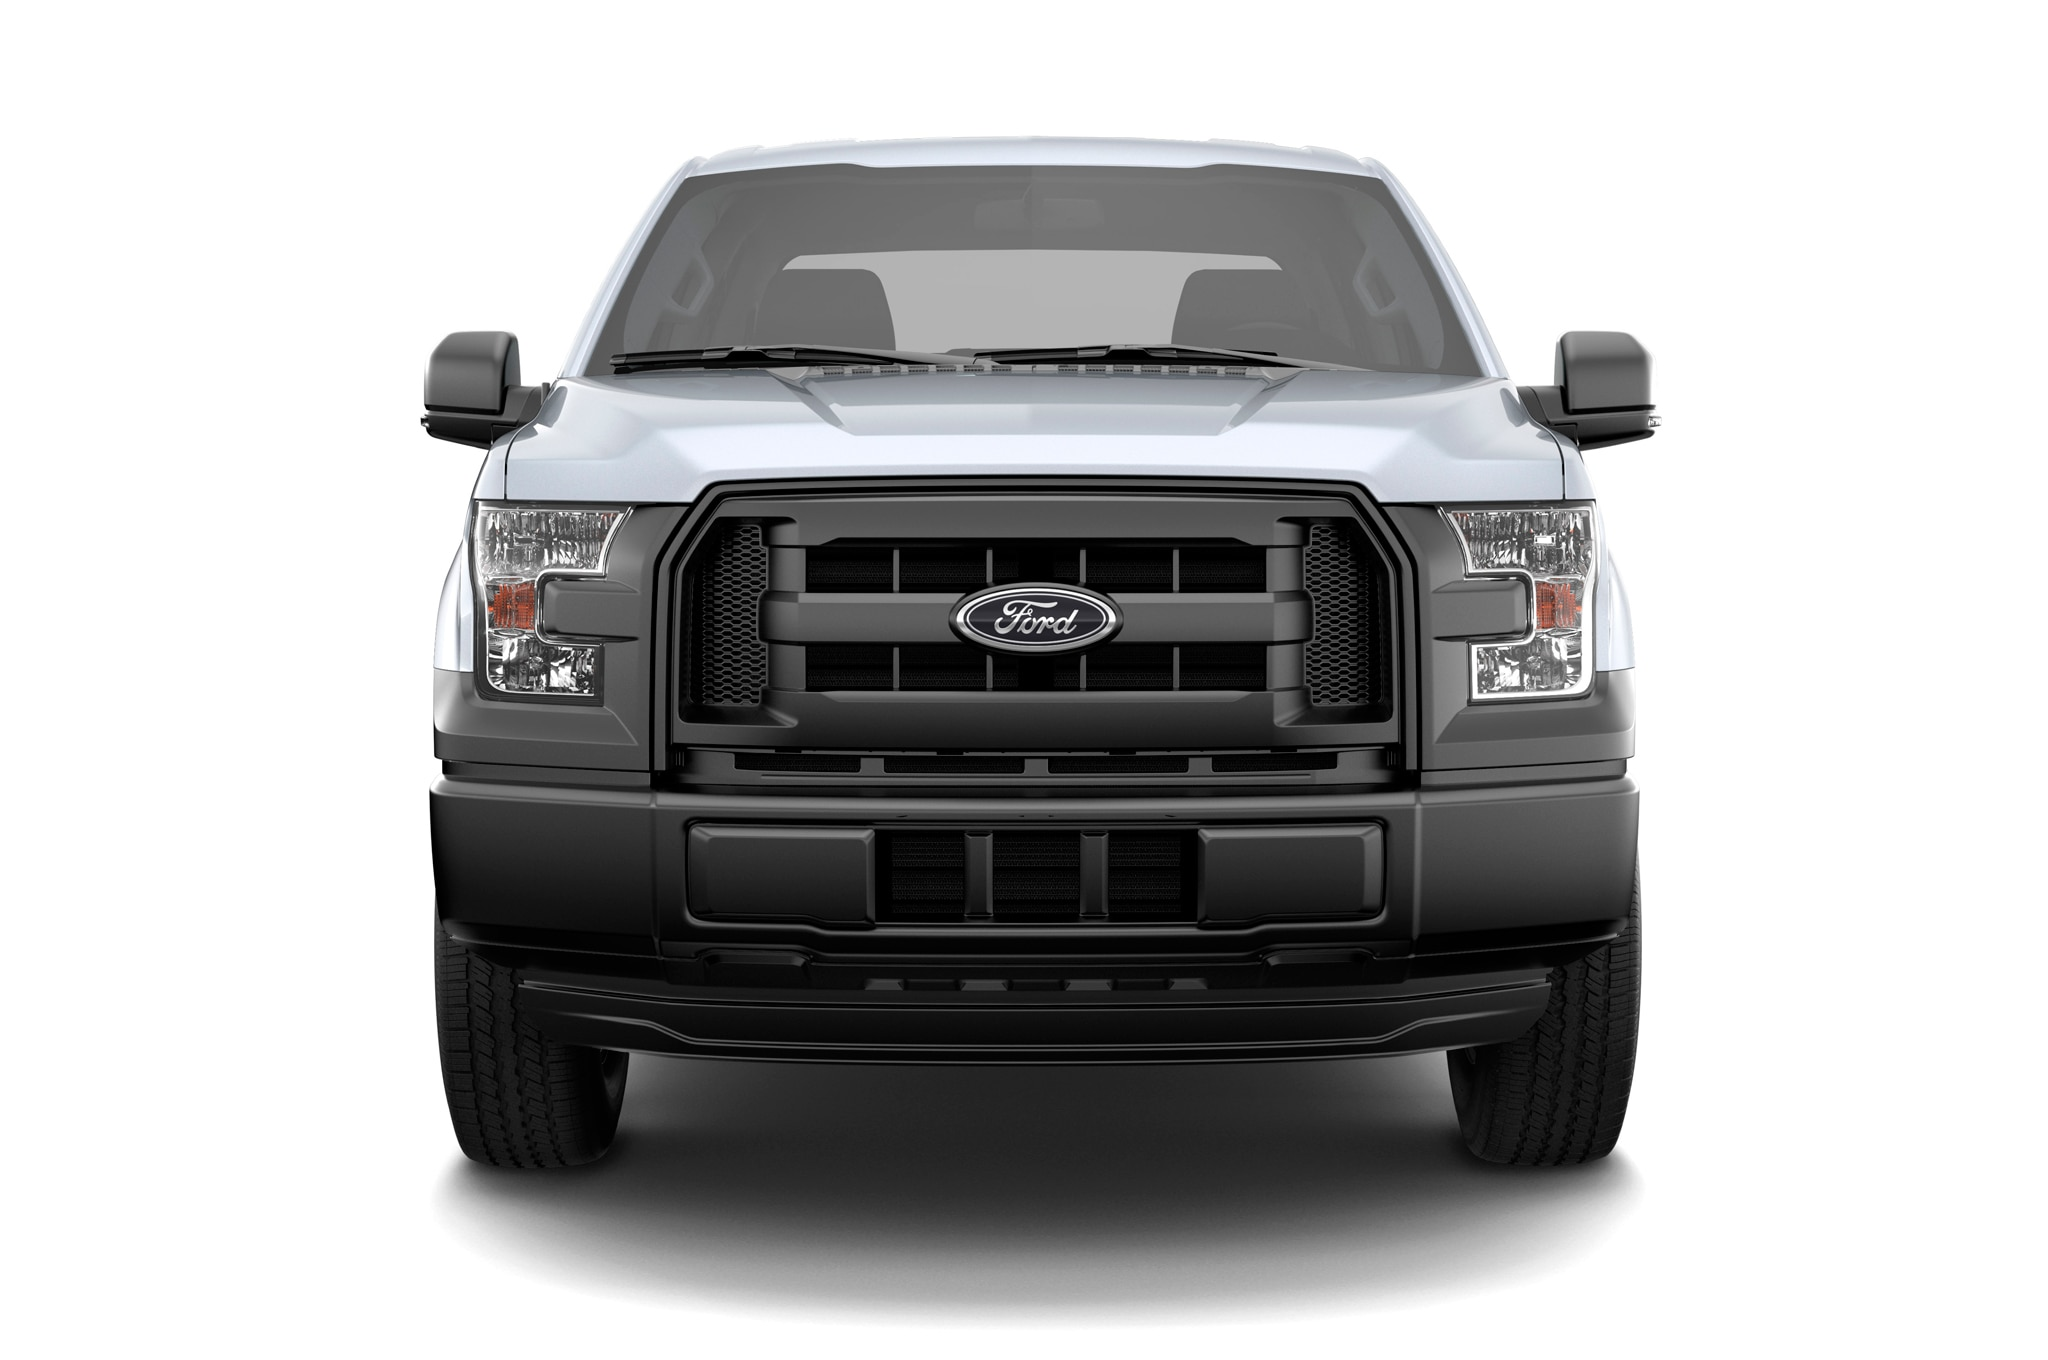 2015 Ford F 150 Regular Cab >> 2015 Ford F-150 Review